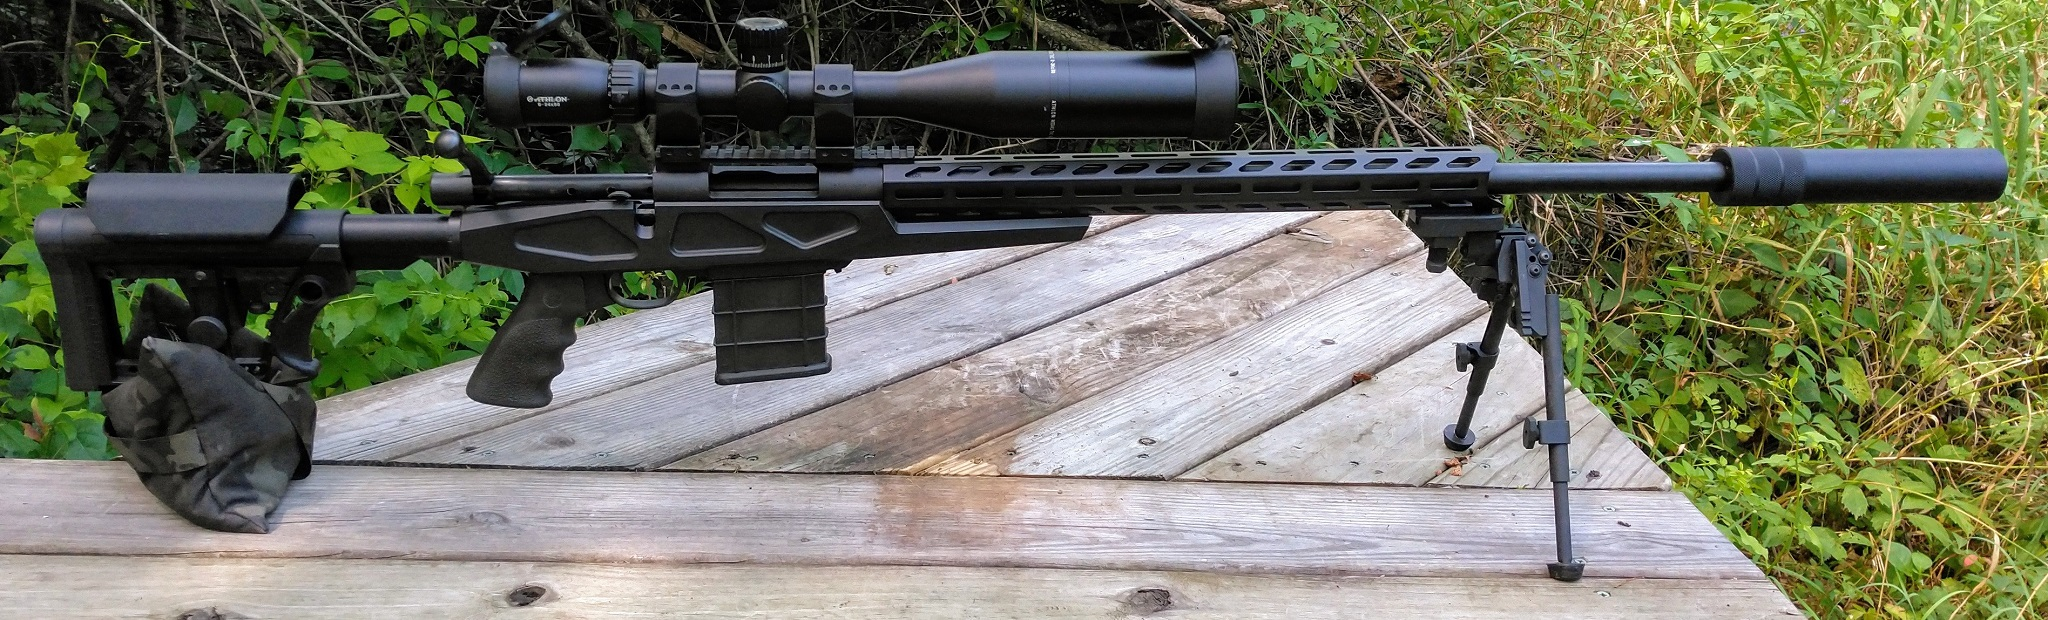 Howa APC with Can On The Range _E 08-03-19_1.jpg